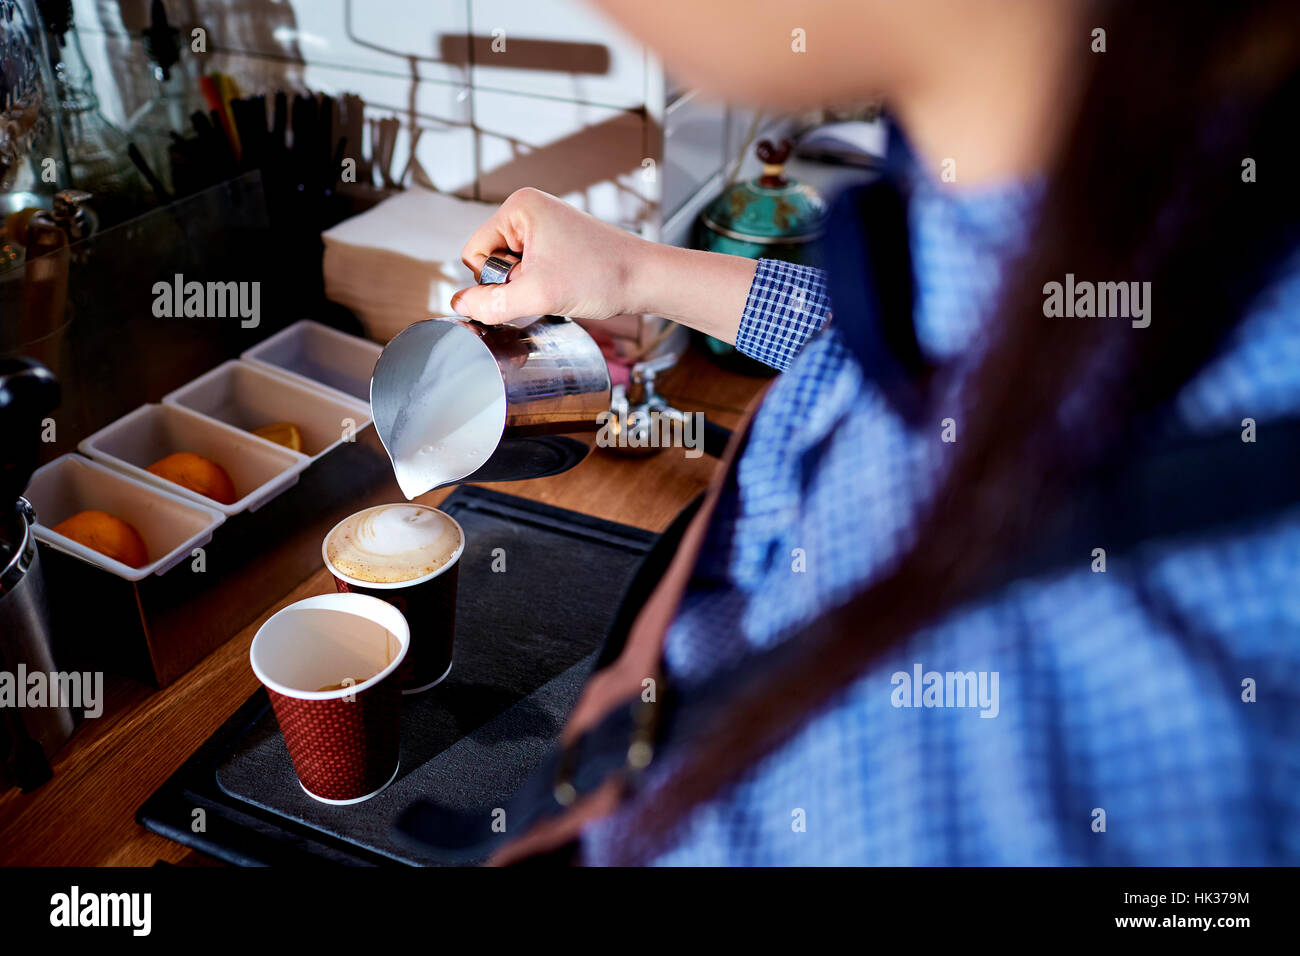 Bartender, barista pours coffee in a cup of cappuccino cafe bar - Stock Image